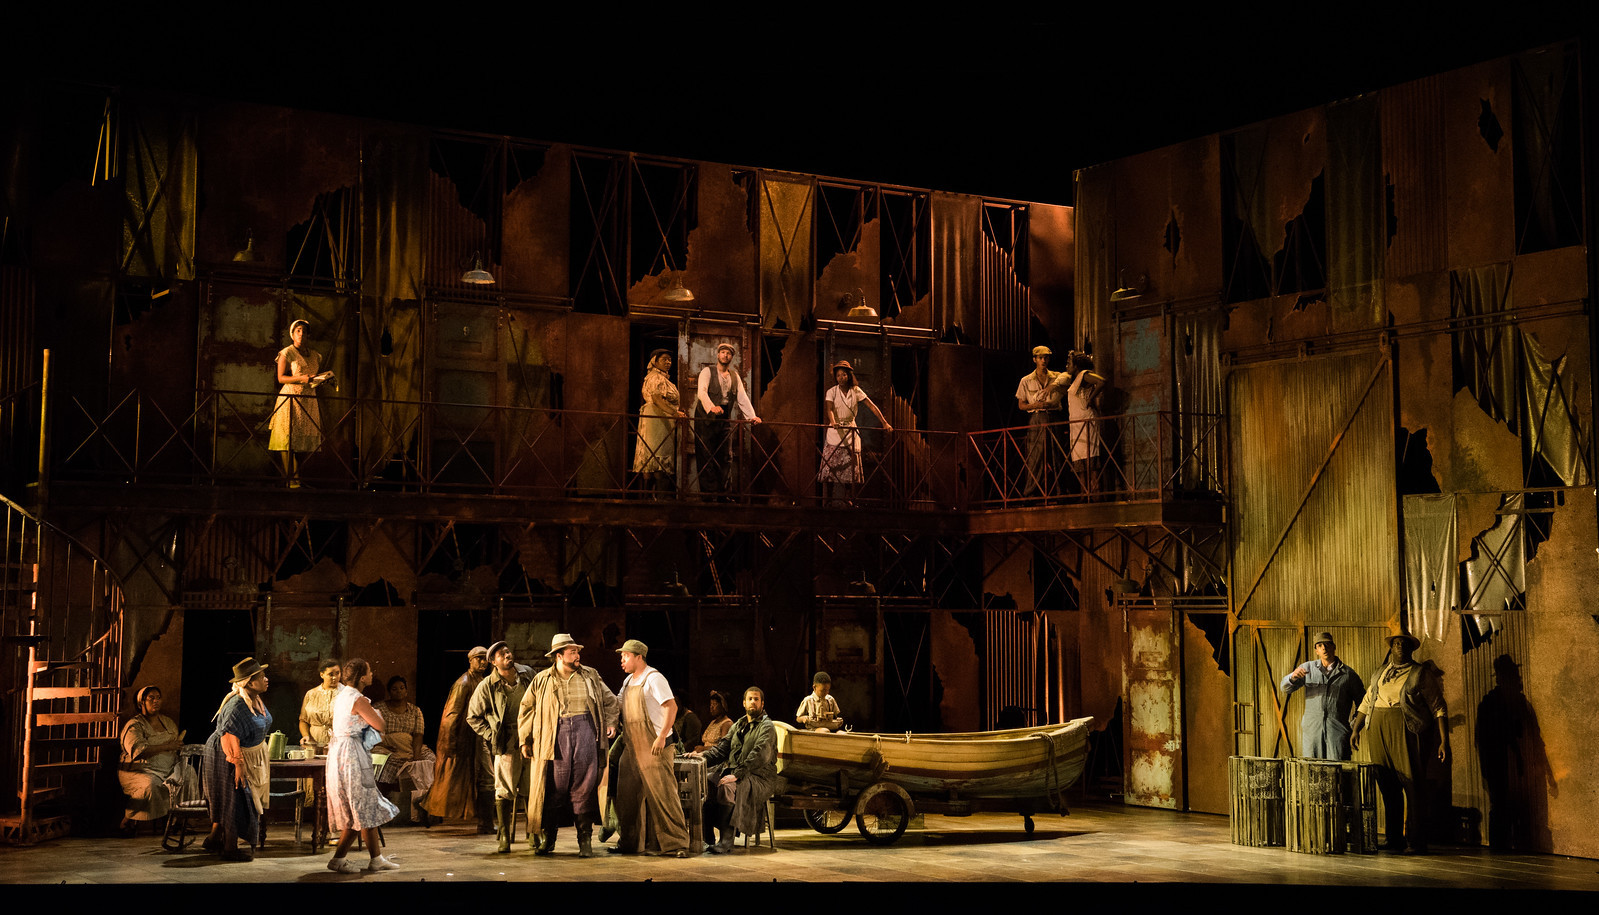 Porgy and Bess credit:Carington Spires